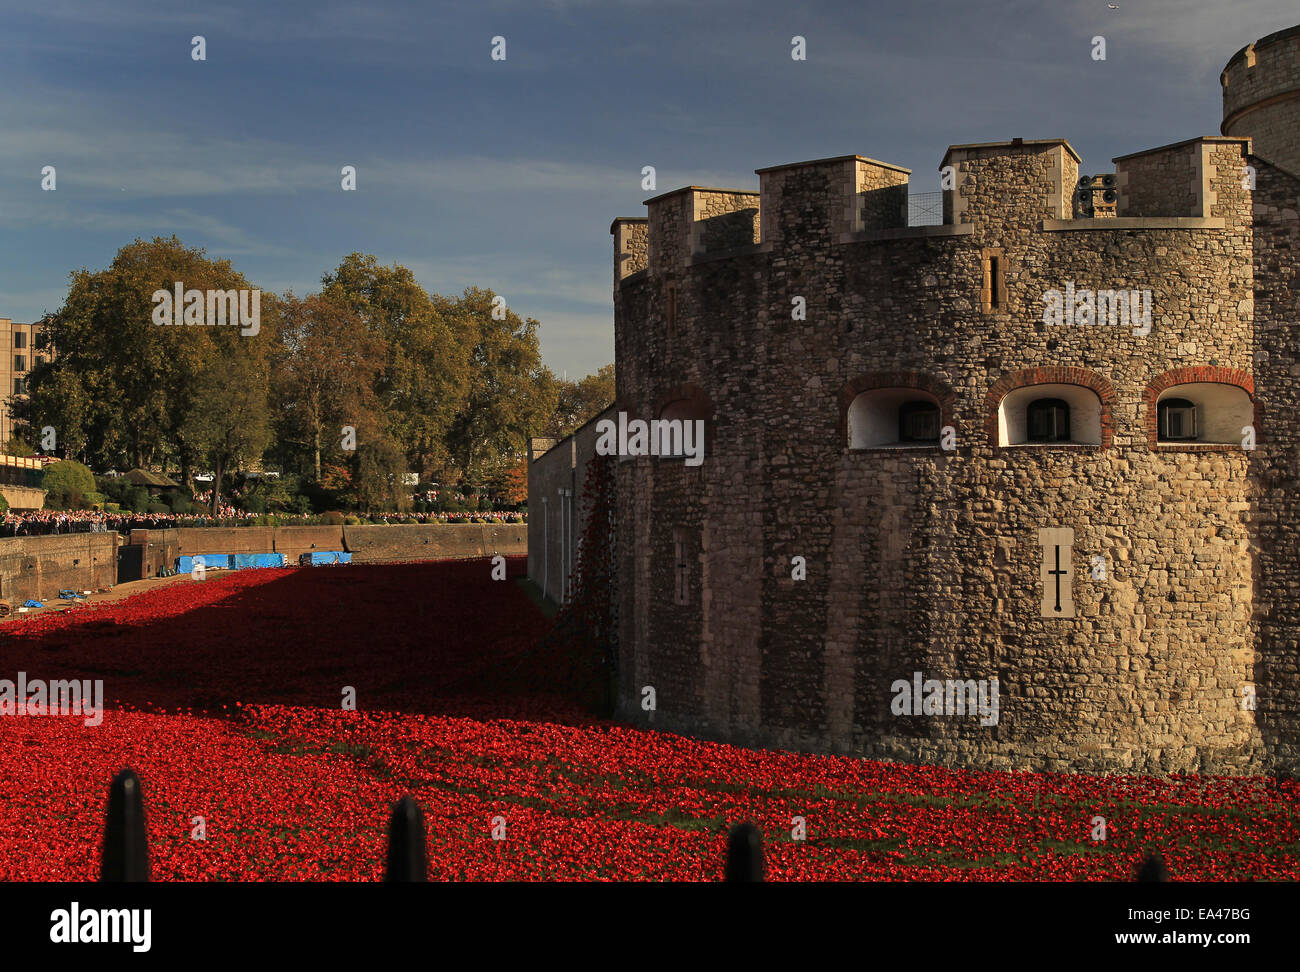 Ceramic poppy installation Blood Swept Lands and Seas Of Red at The Tower of London - Stock Image